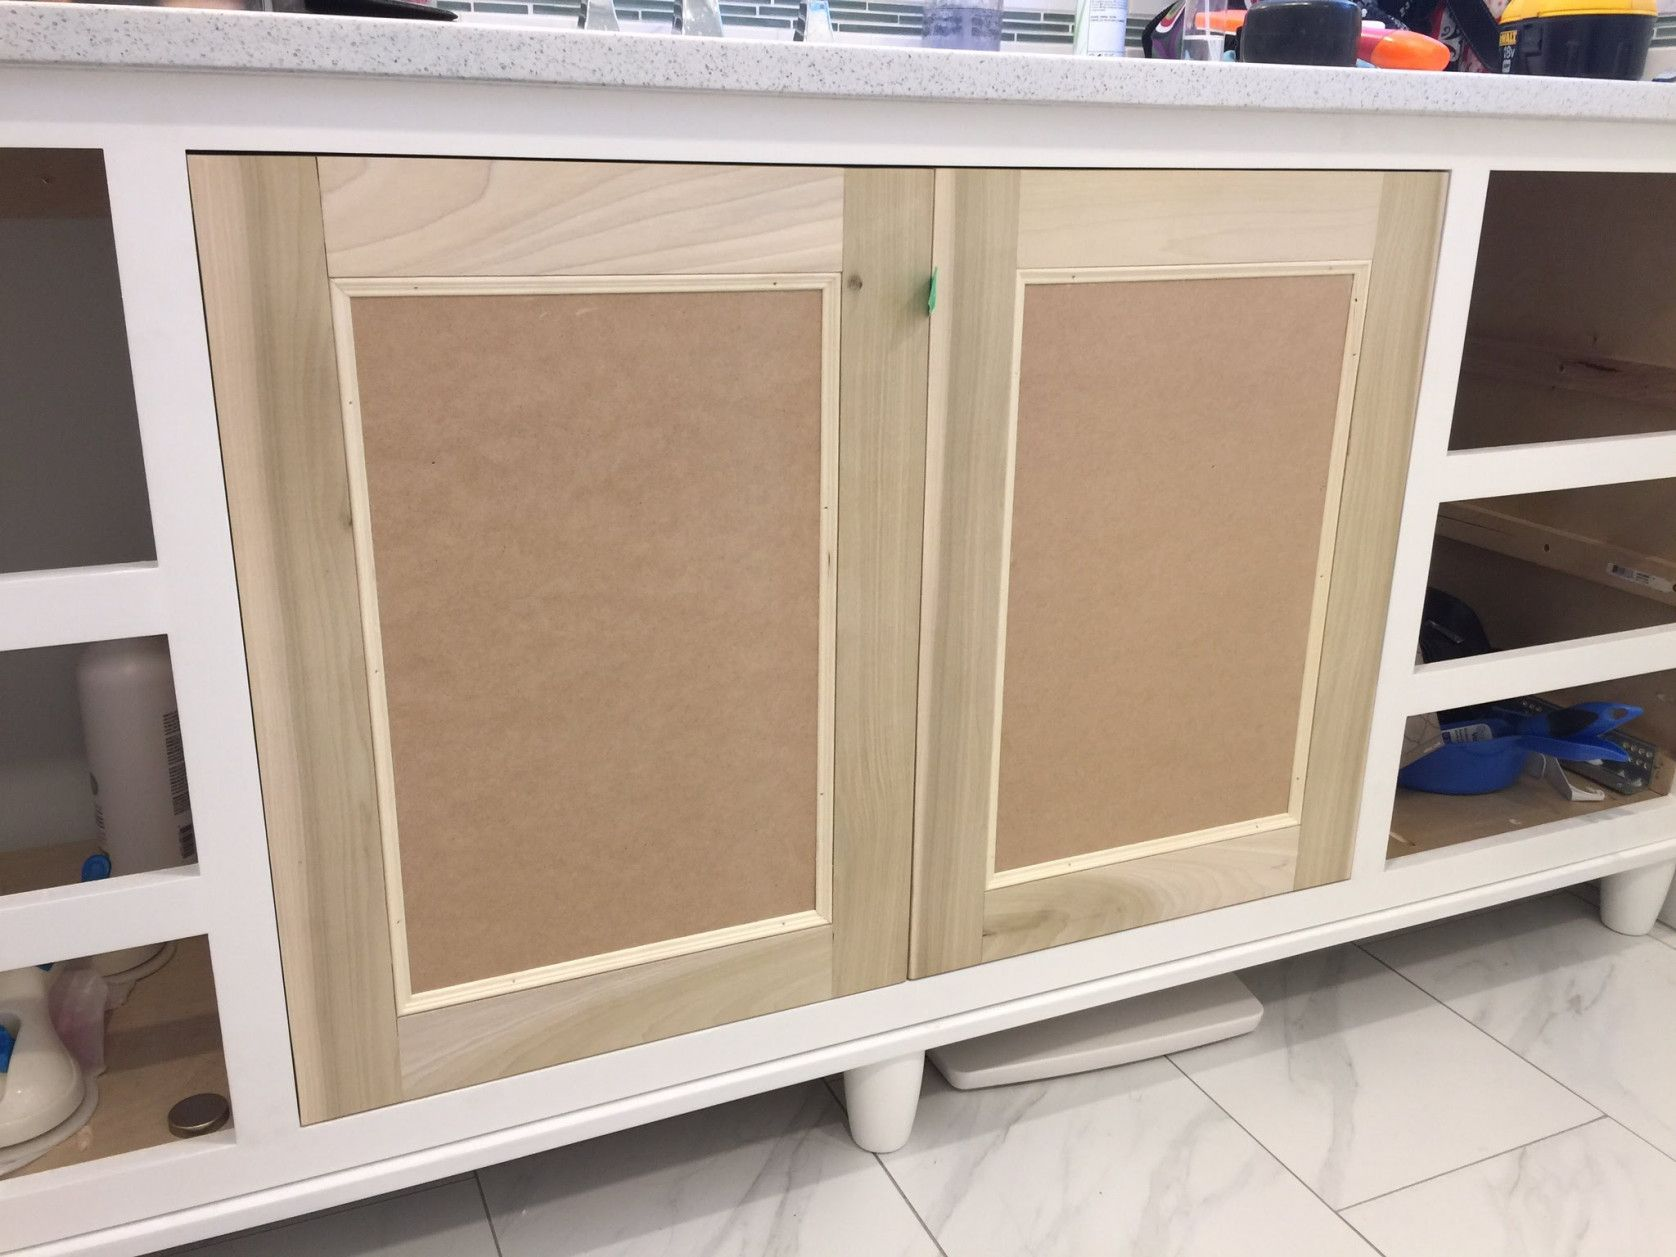 2019 How To Build A Cabinet Door Frame Kitchen Counter Top Ideas